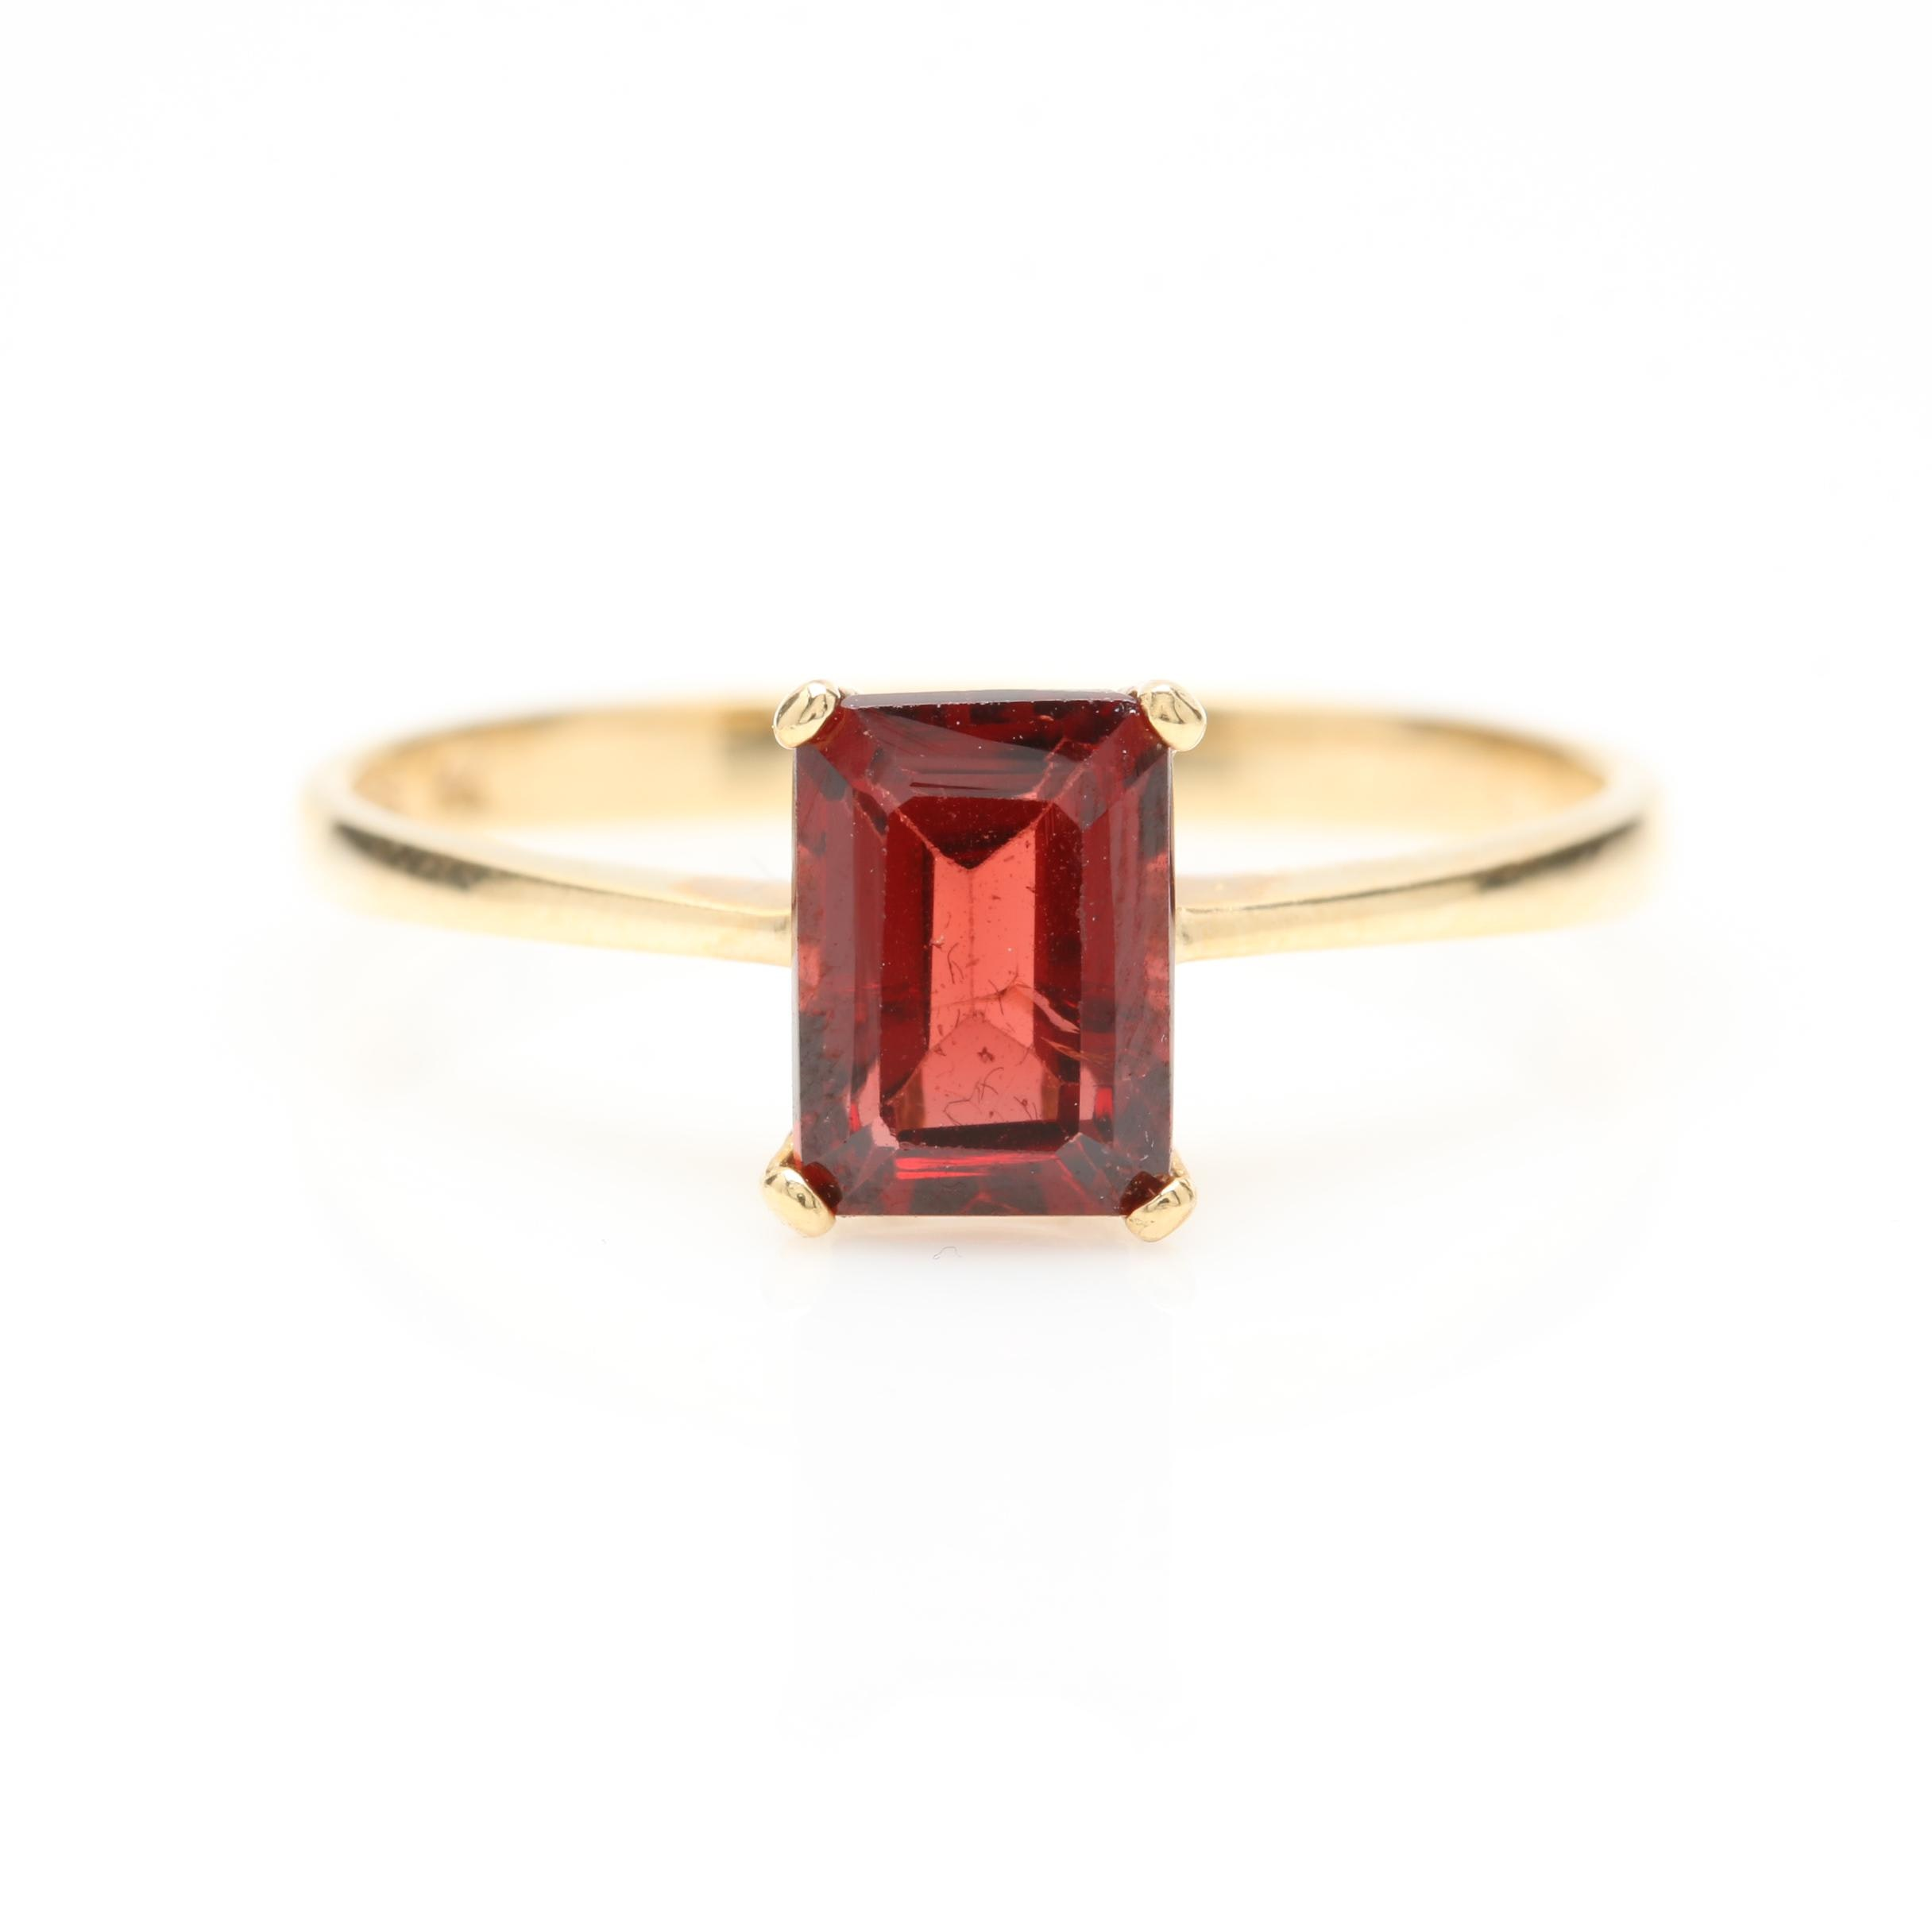 14K Yellow Gold 1.39 CT Rhodolite Garnet Solitaire Ring